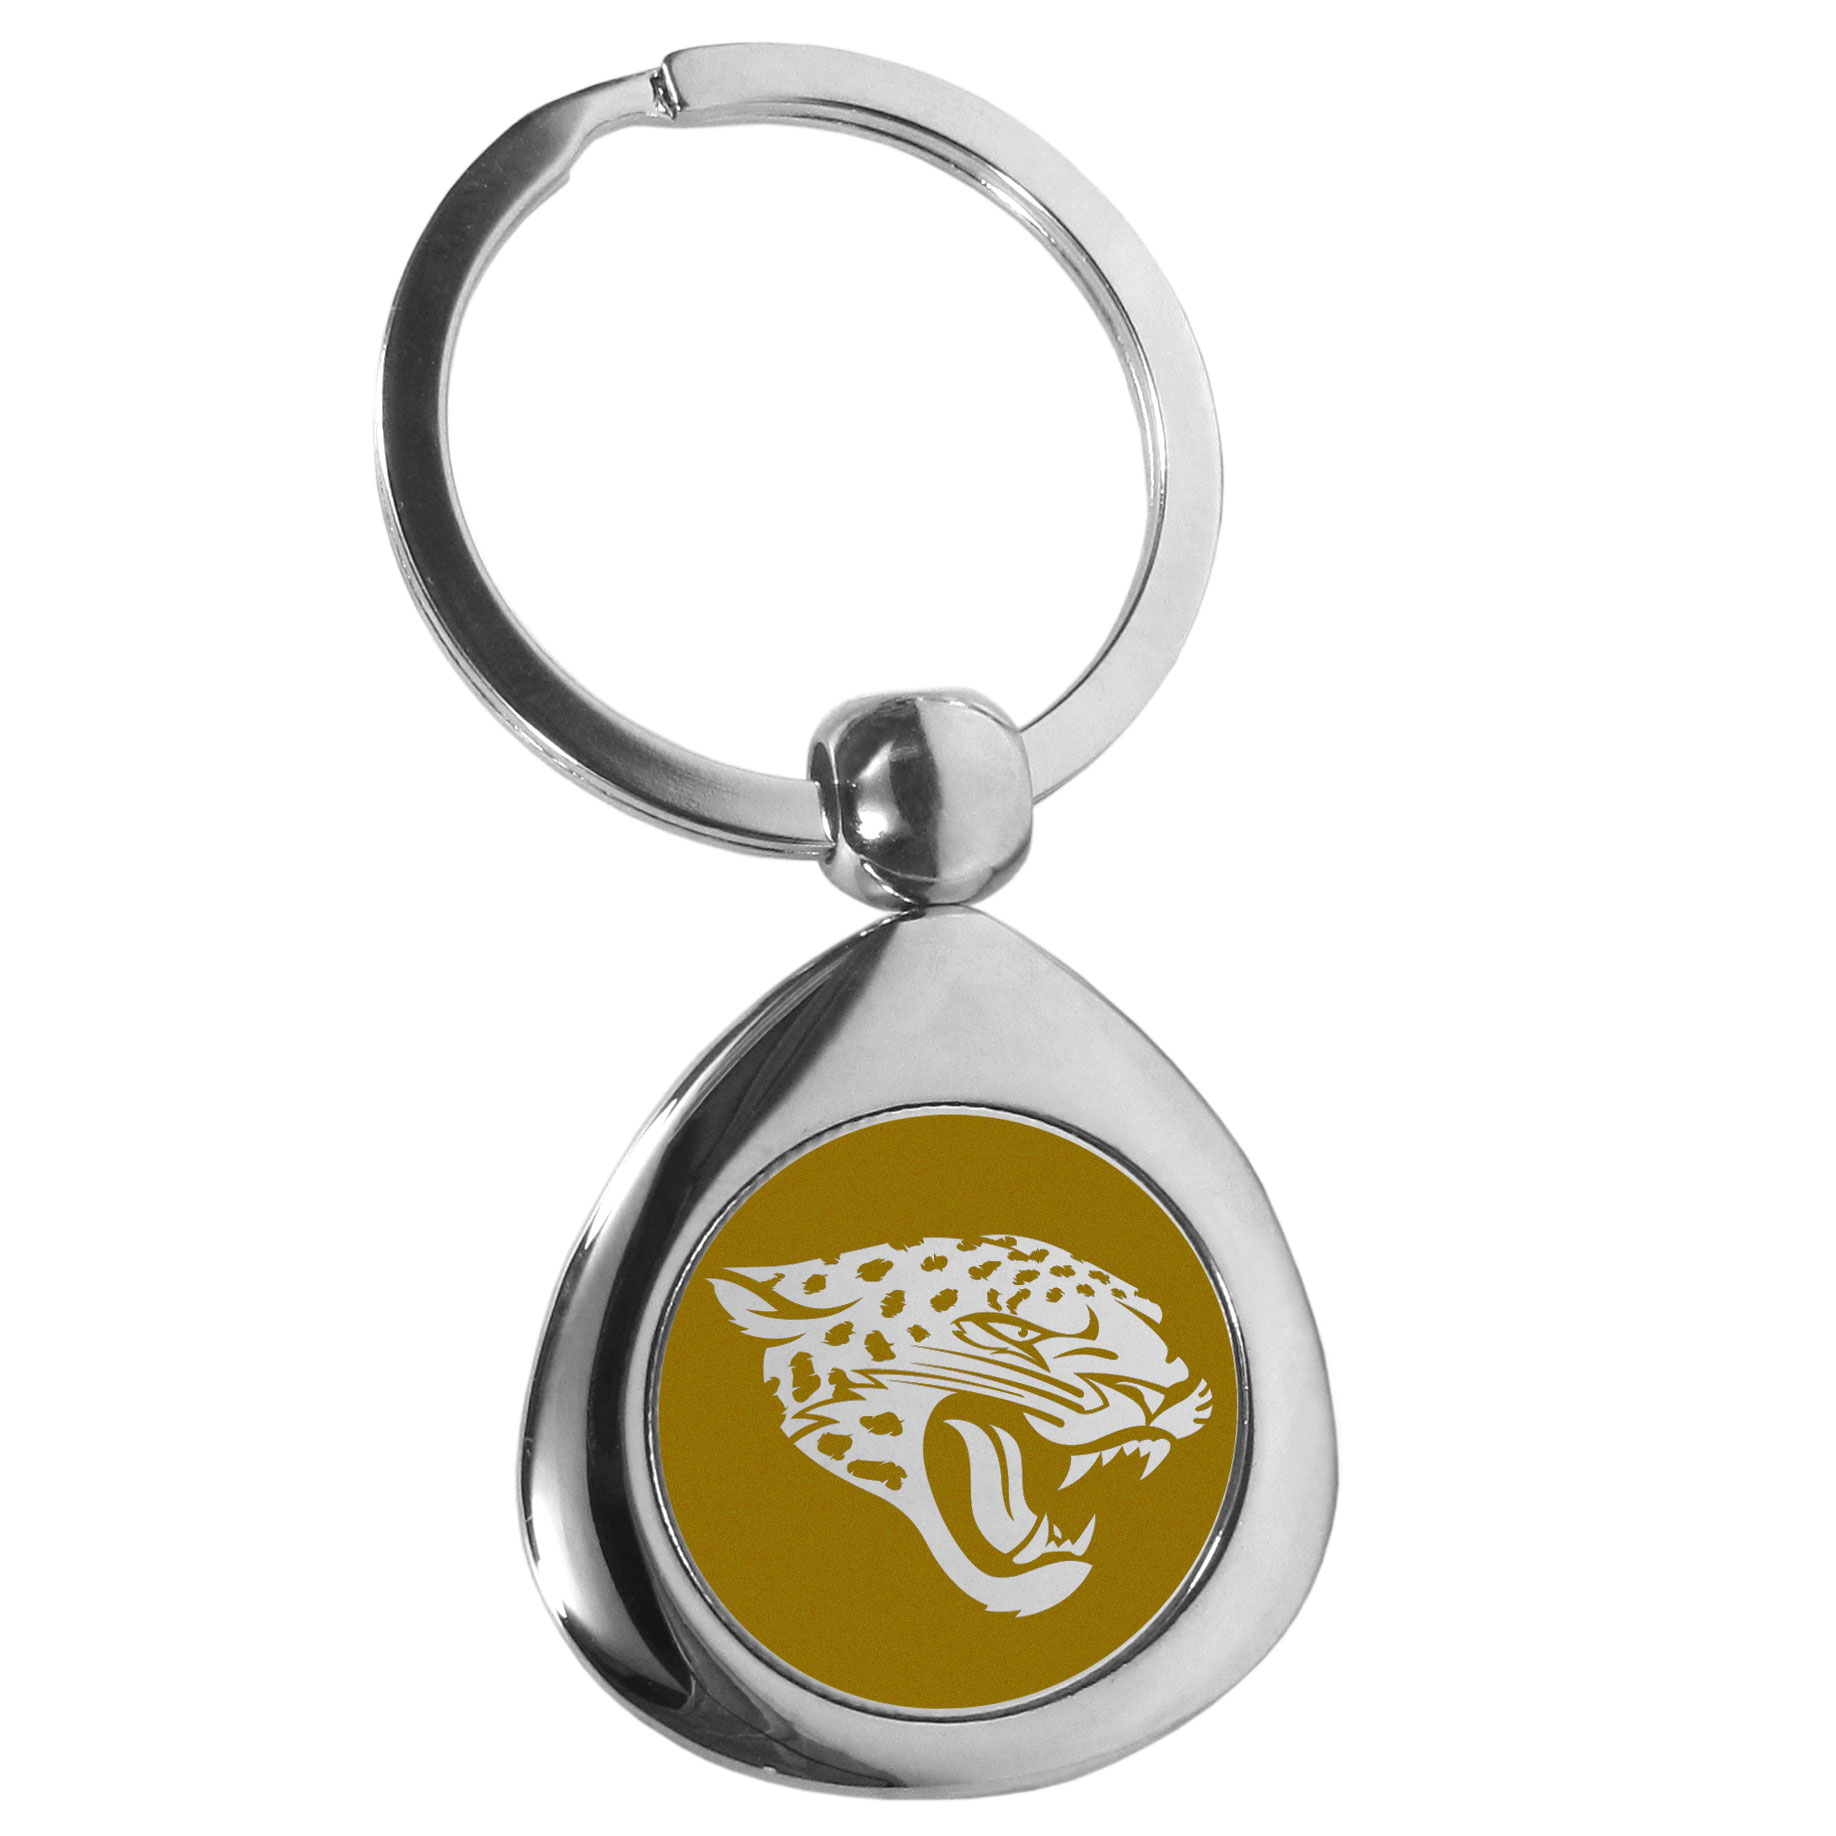 Jacksonville Jaguars Round Teardrop Key Chain - Our high polish chrome Jacksonville Jaguars round teardrop key chain has a classy look with a sporty twist. The high-quality key fob features the team logo in the team's primary color. The key ring is a flat split ring that is easier to load you home and auto keys onto.